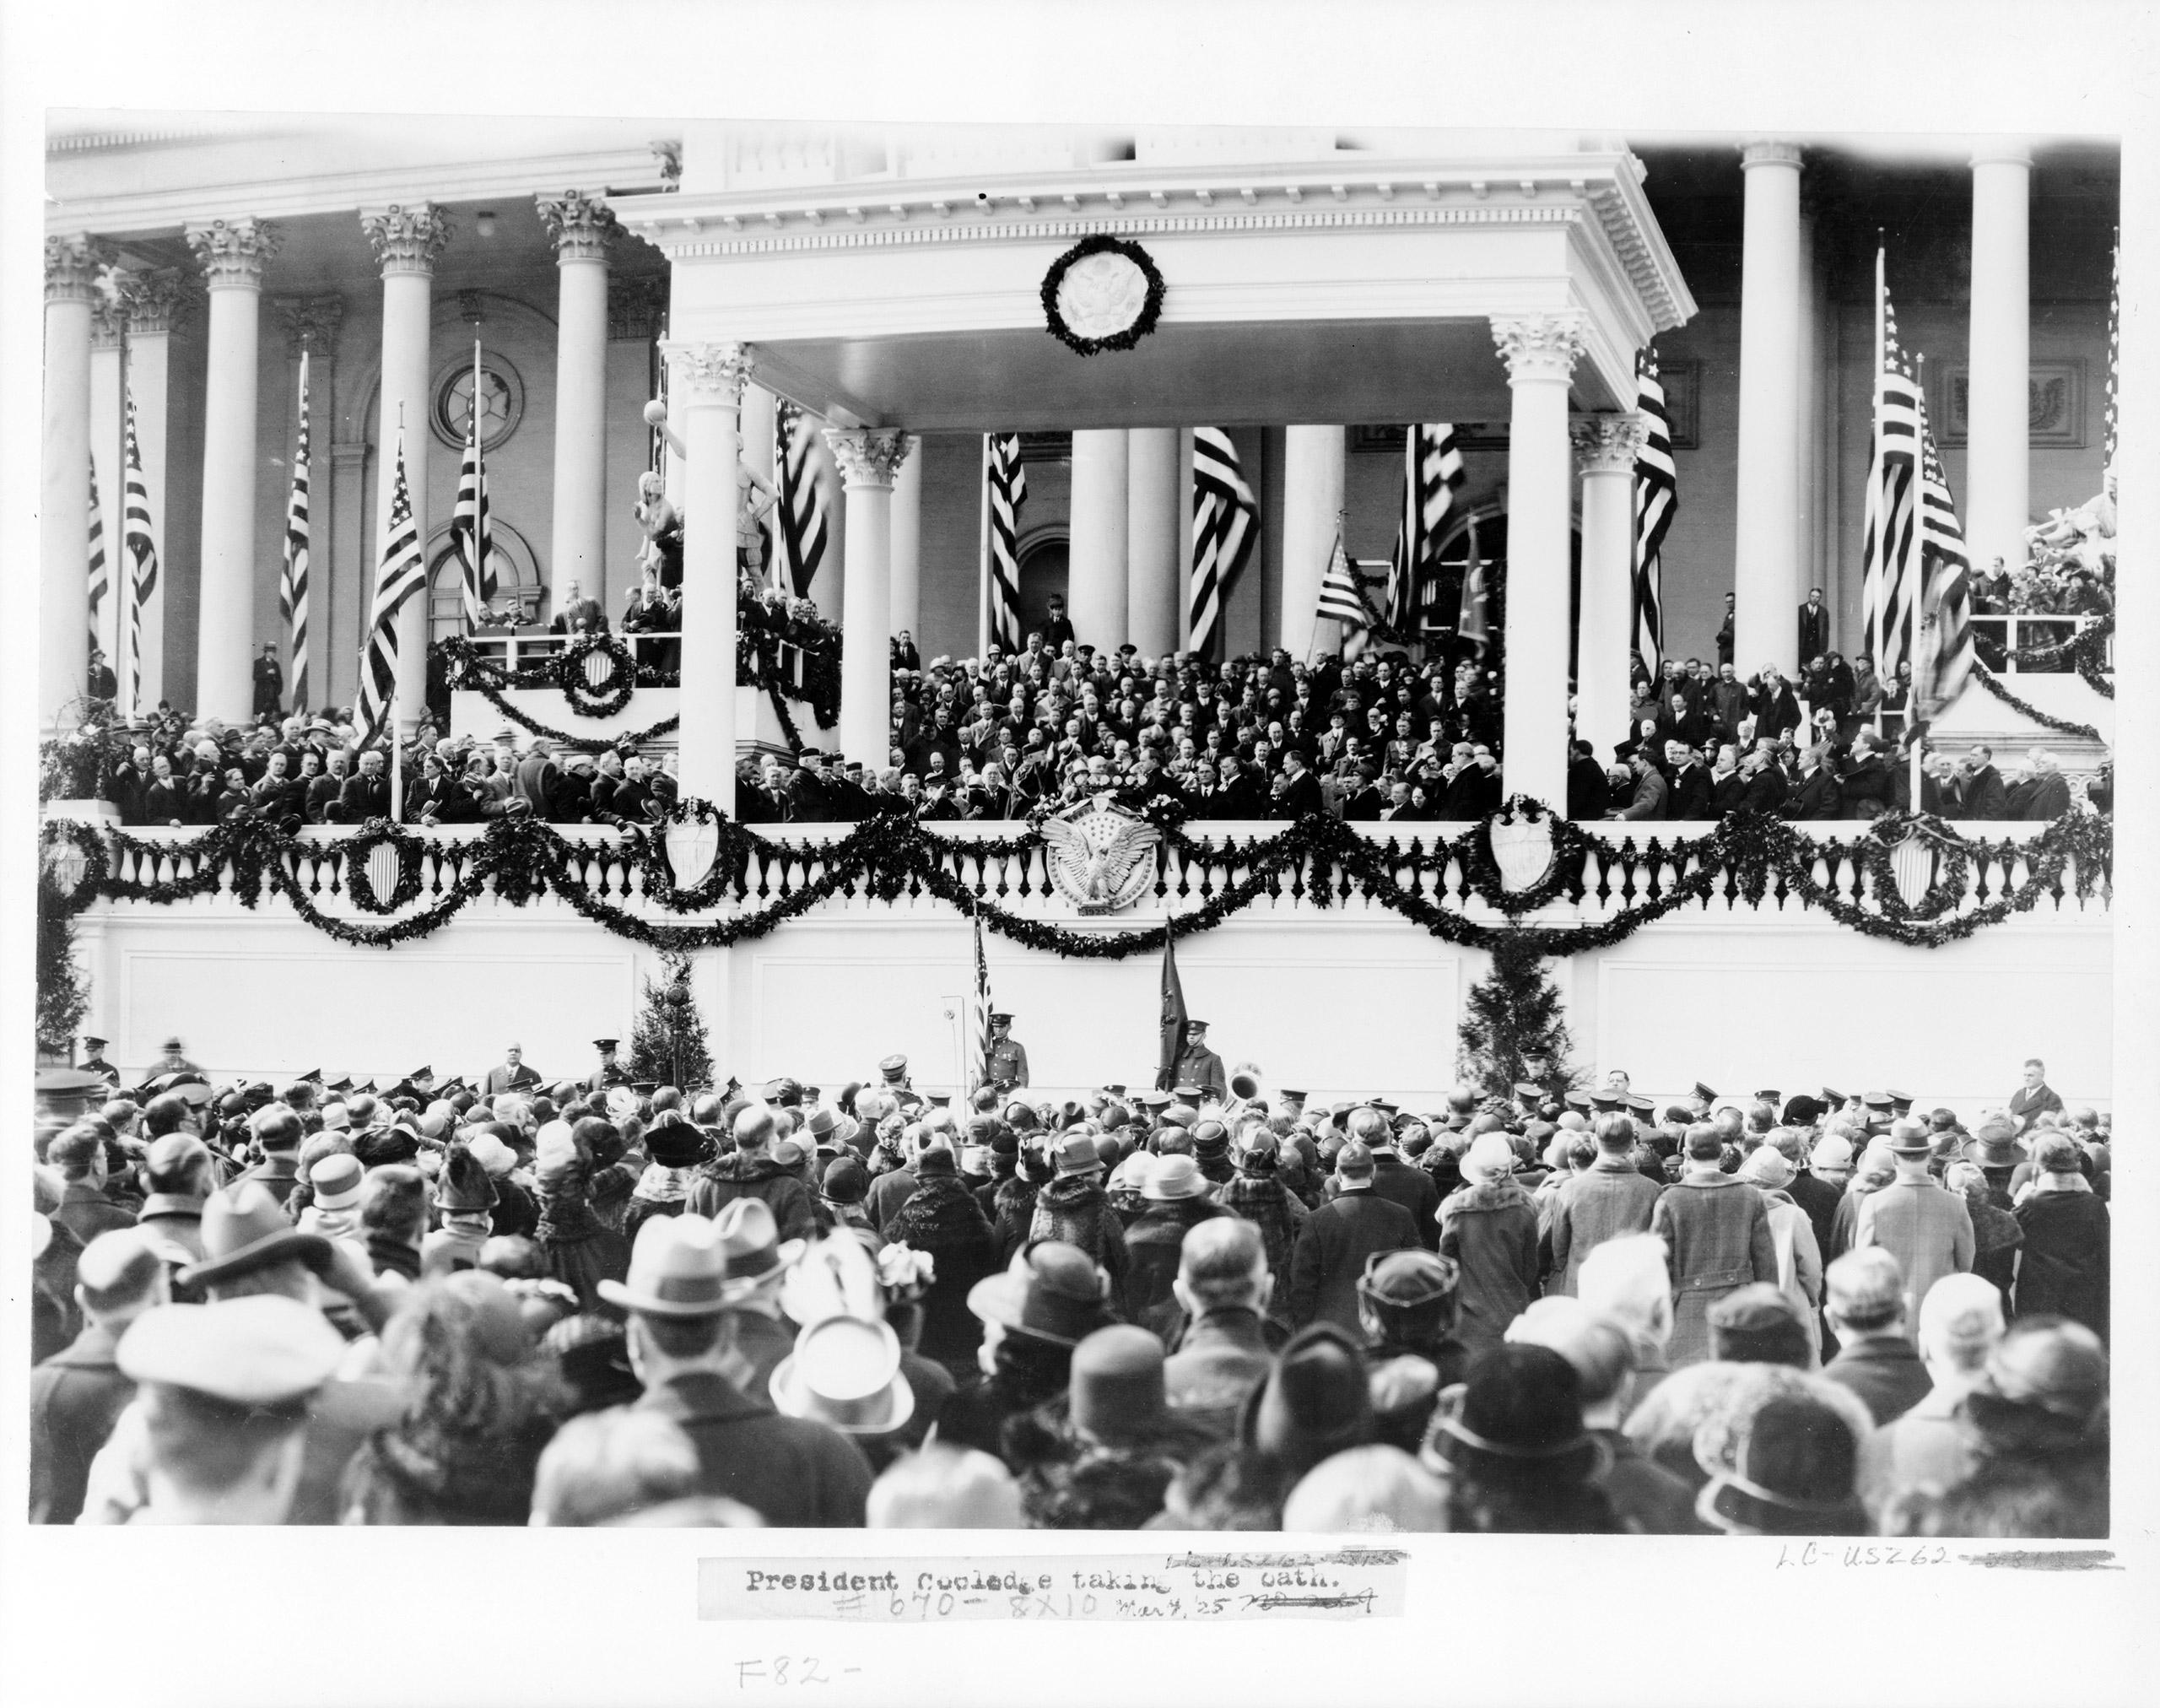 Chief Justice William H. Taft administering the oath of office to Calvin Coolidge on the east portico of the U.S. Capitol, March 4, 1925.